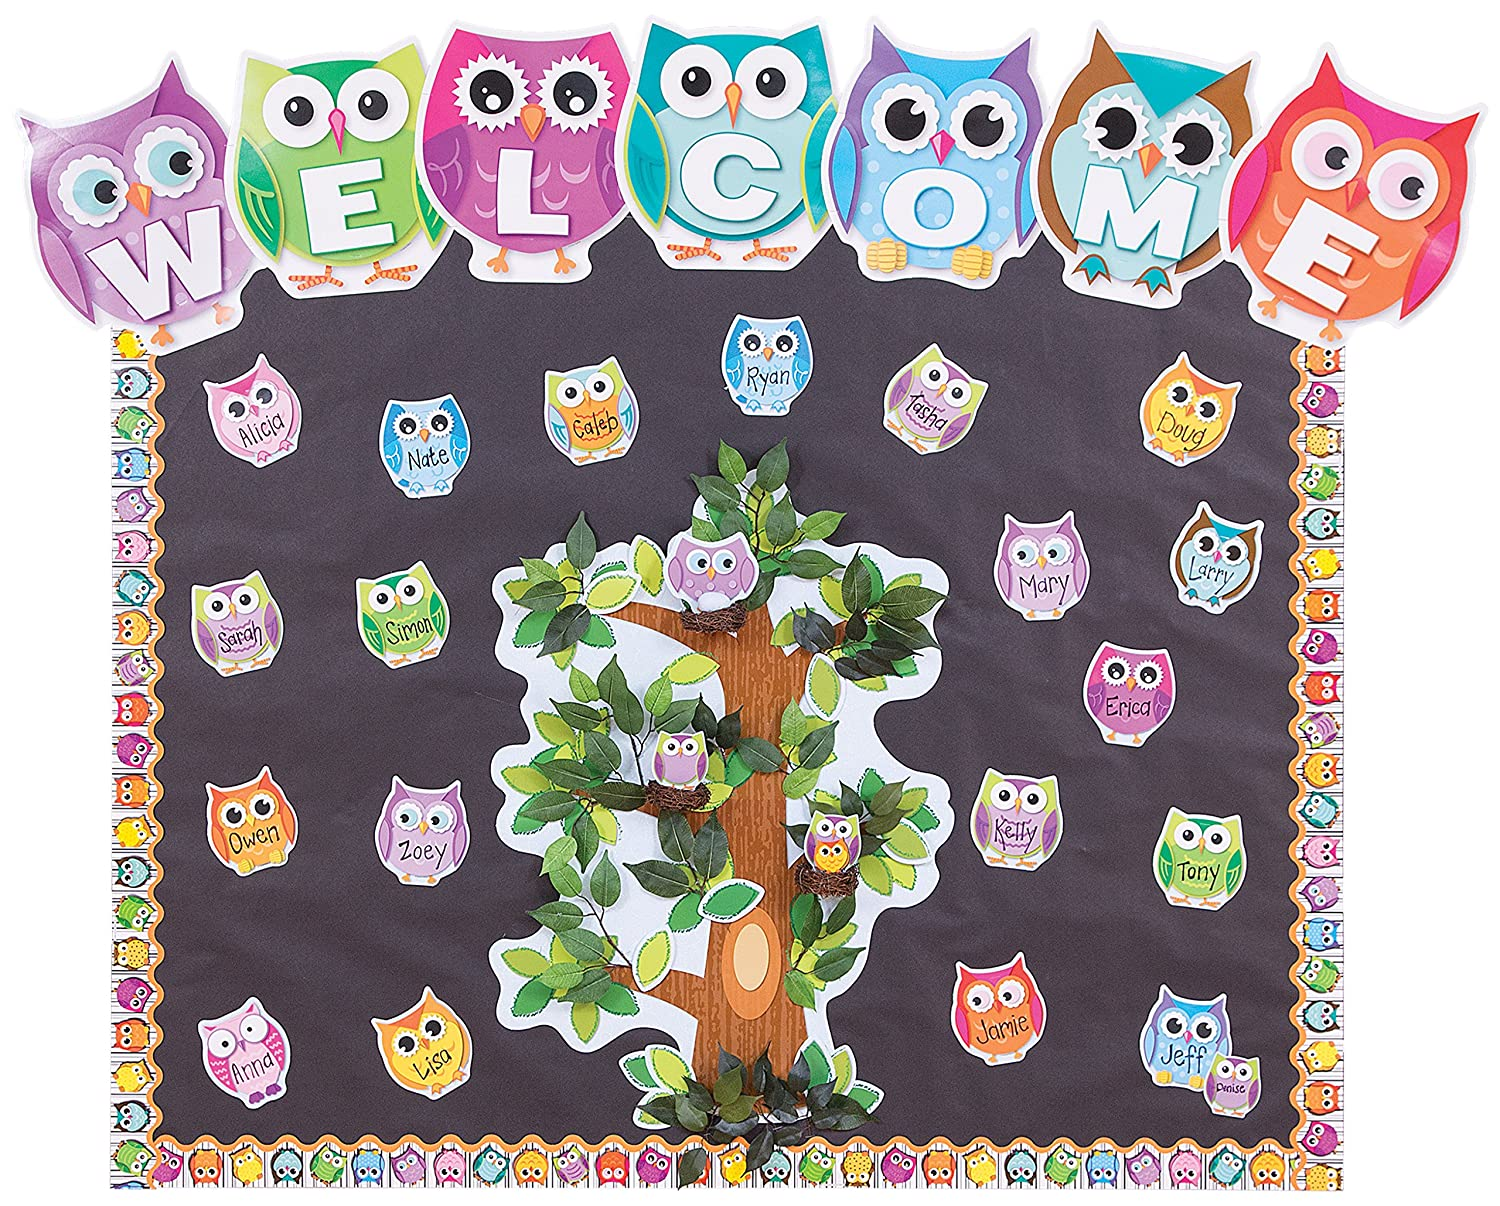 amazoncom carson dellosa colorful owl welcome bulletin board set 110192 carson dellosa publishing office products